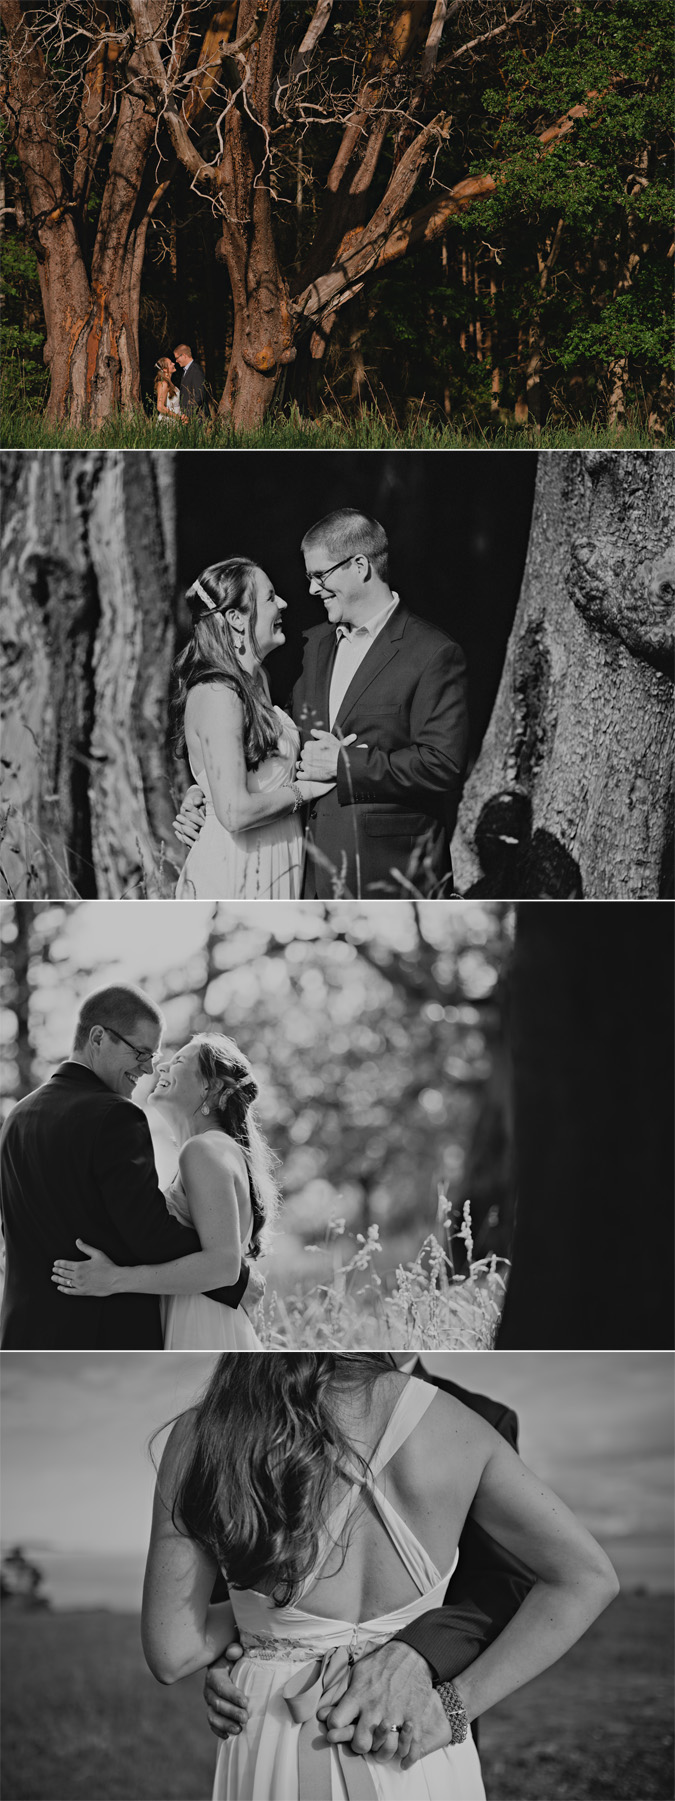 candid portraits of a bride & groom at helliwell park, hornby island, bc